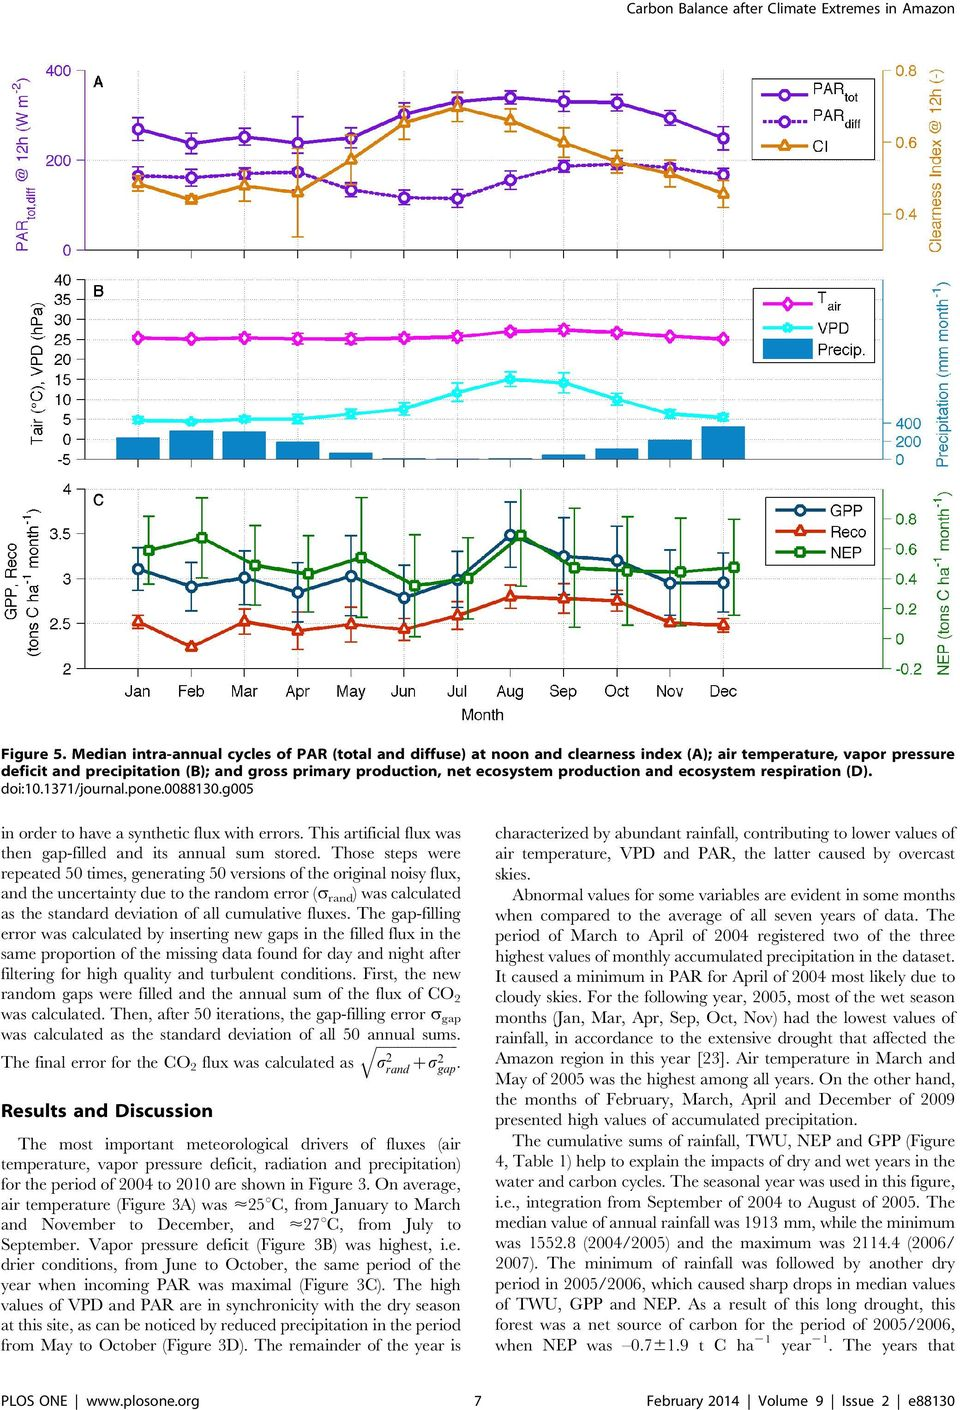 production and ecosystem respiration (D). doi:10.1371/journal.pone.0088130.g005 in order to have a synthetic flux with errors. This artificial flux was then gap-filled and its annual sum stored.